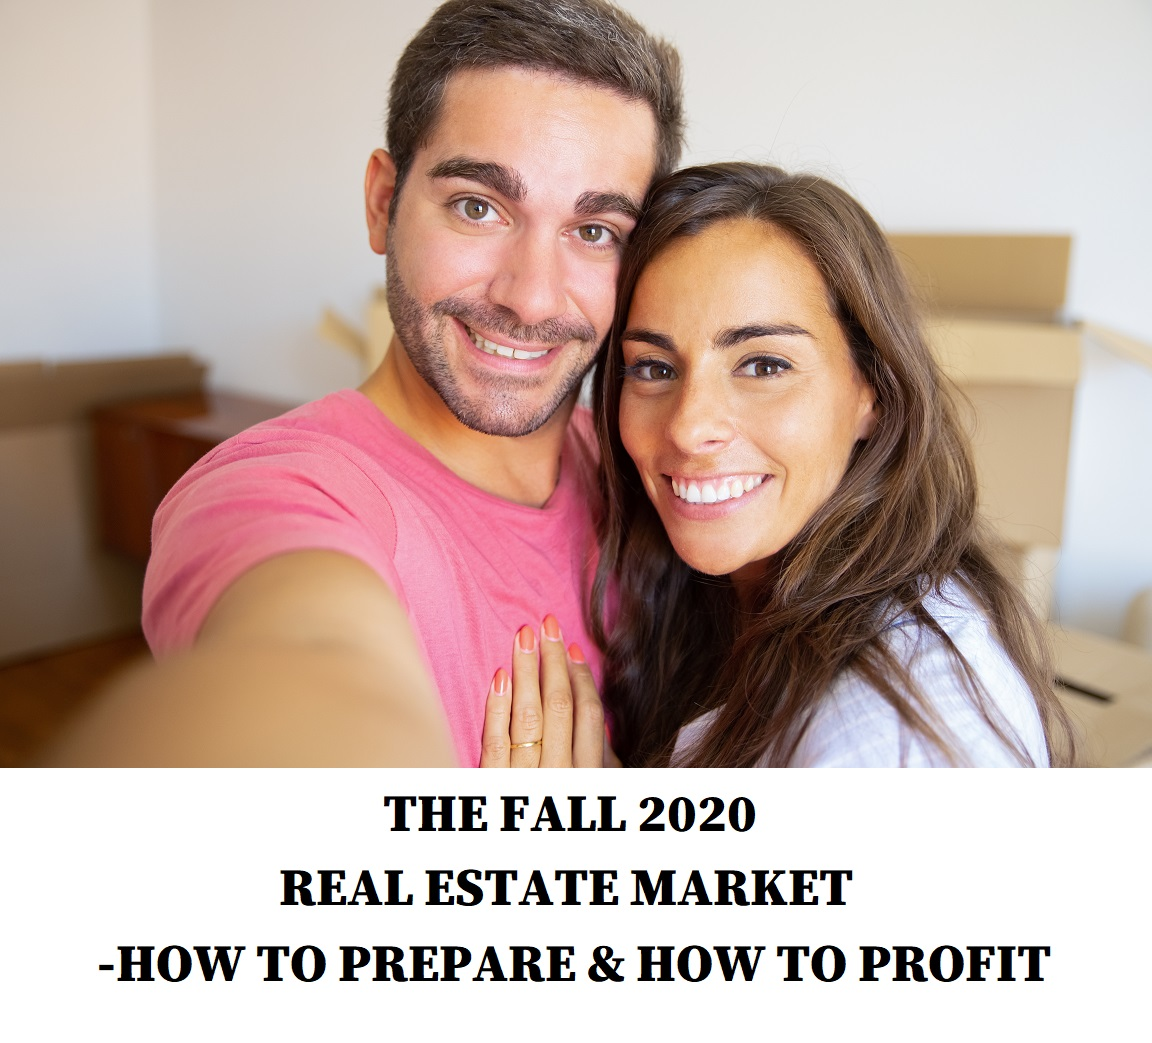 THE FALL 2020 REAL ESTATE MARKET-HOW TO PREPARE & HOW TO PROFIT